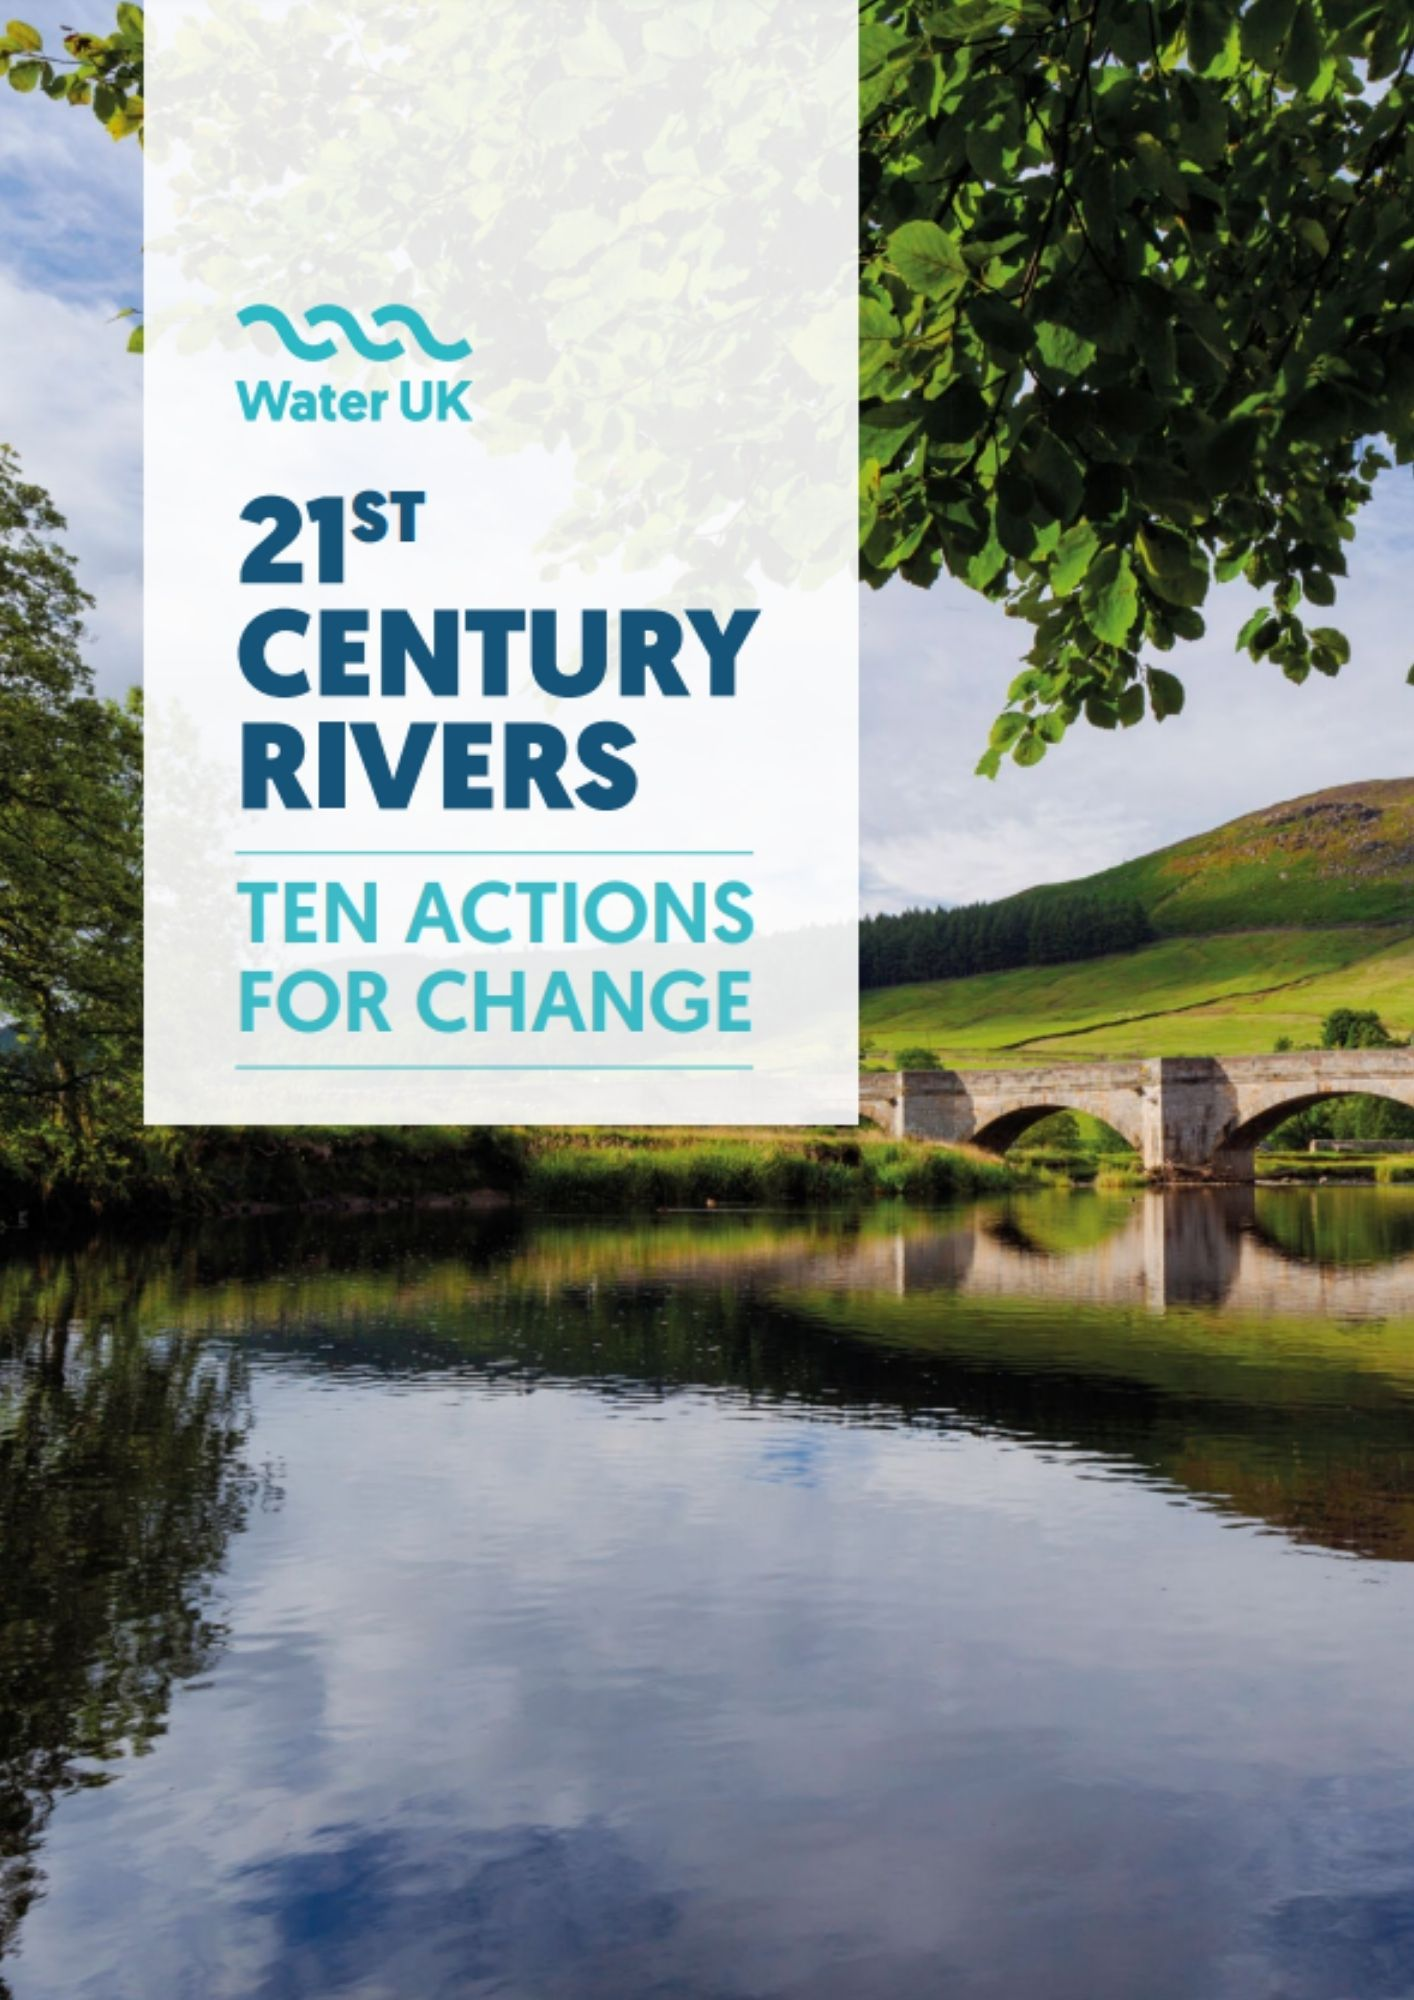 21 Century Rivers - 10 actions for change - Water UK